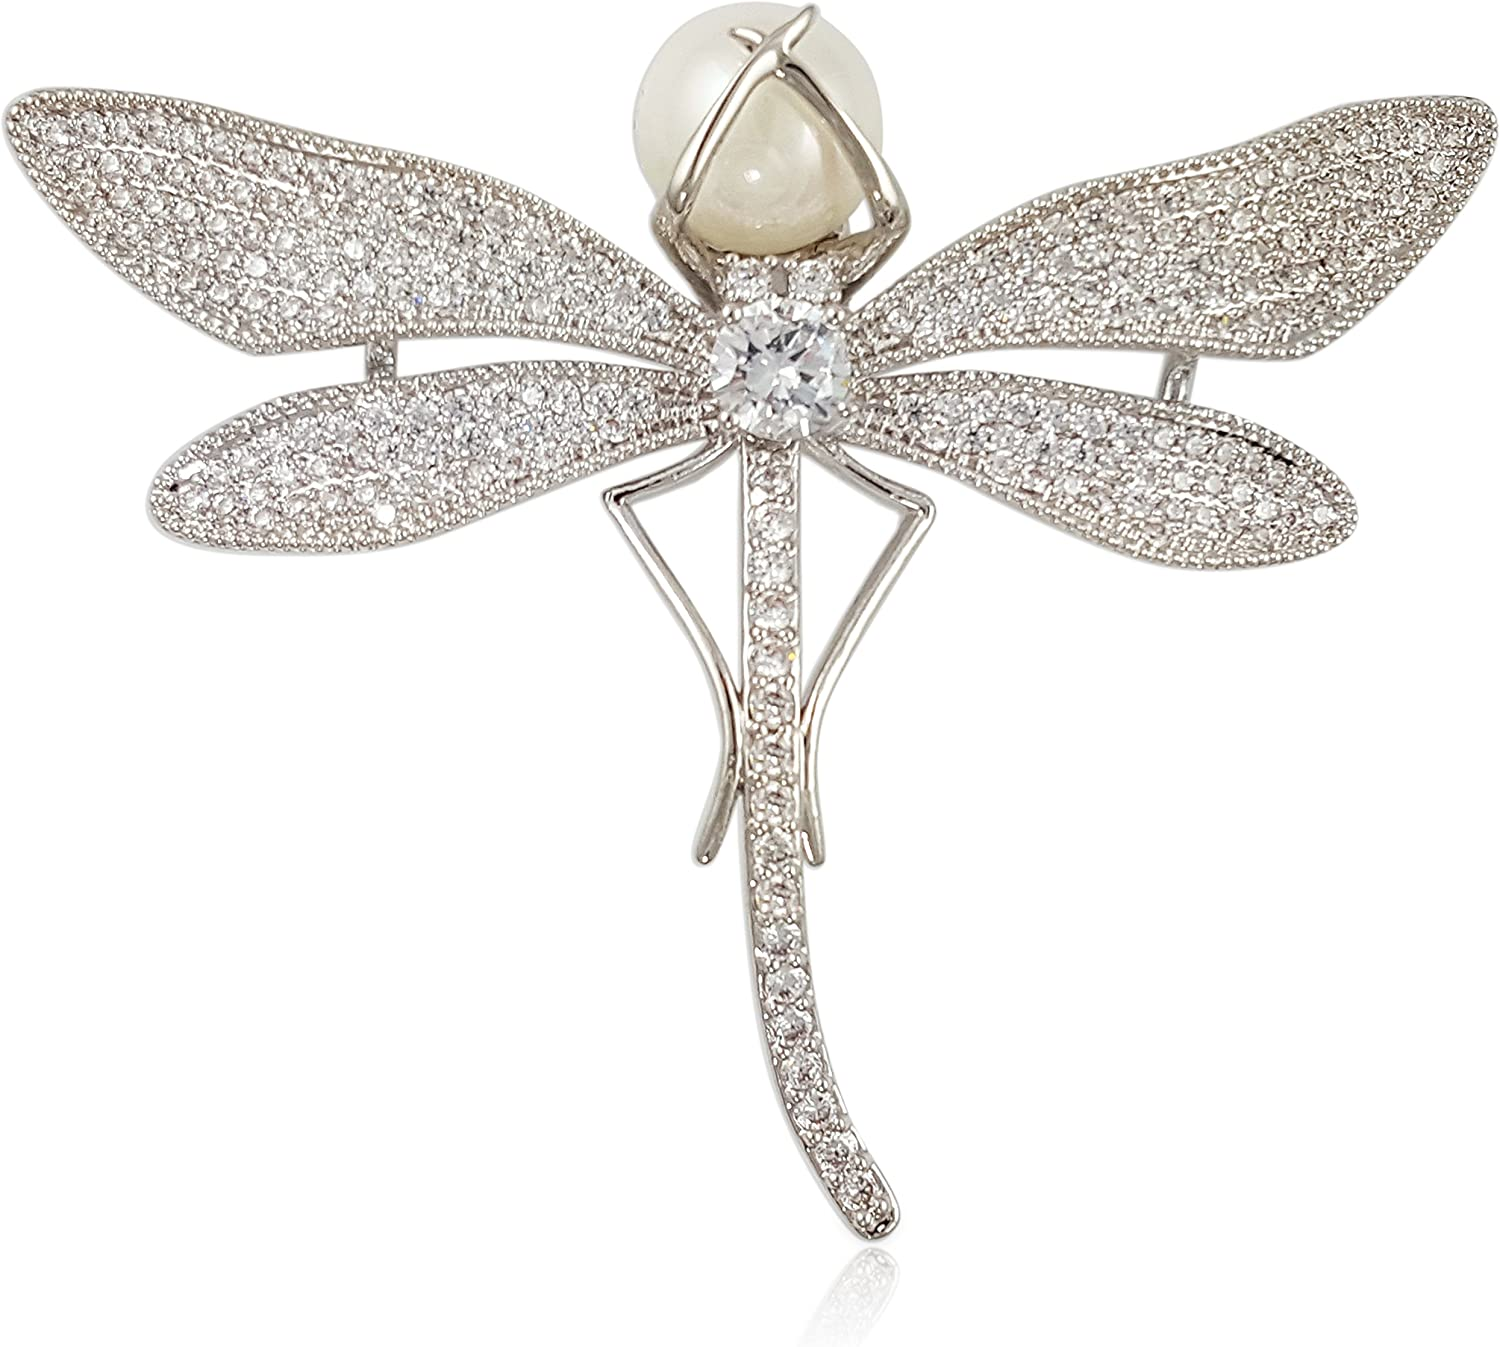 Crystal Pearl Dragonfly Brooch PIN Made with Swarovski Elements